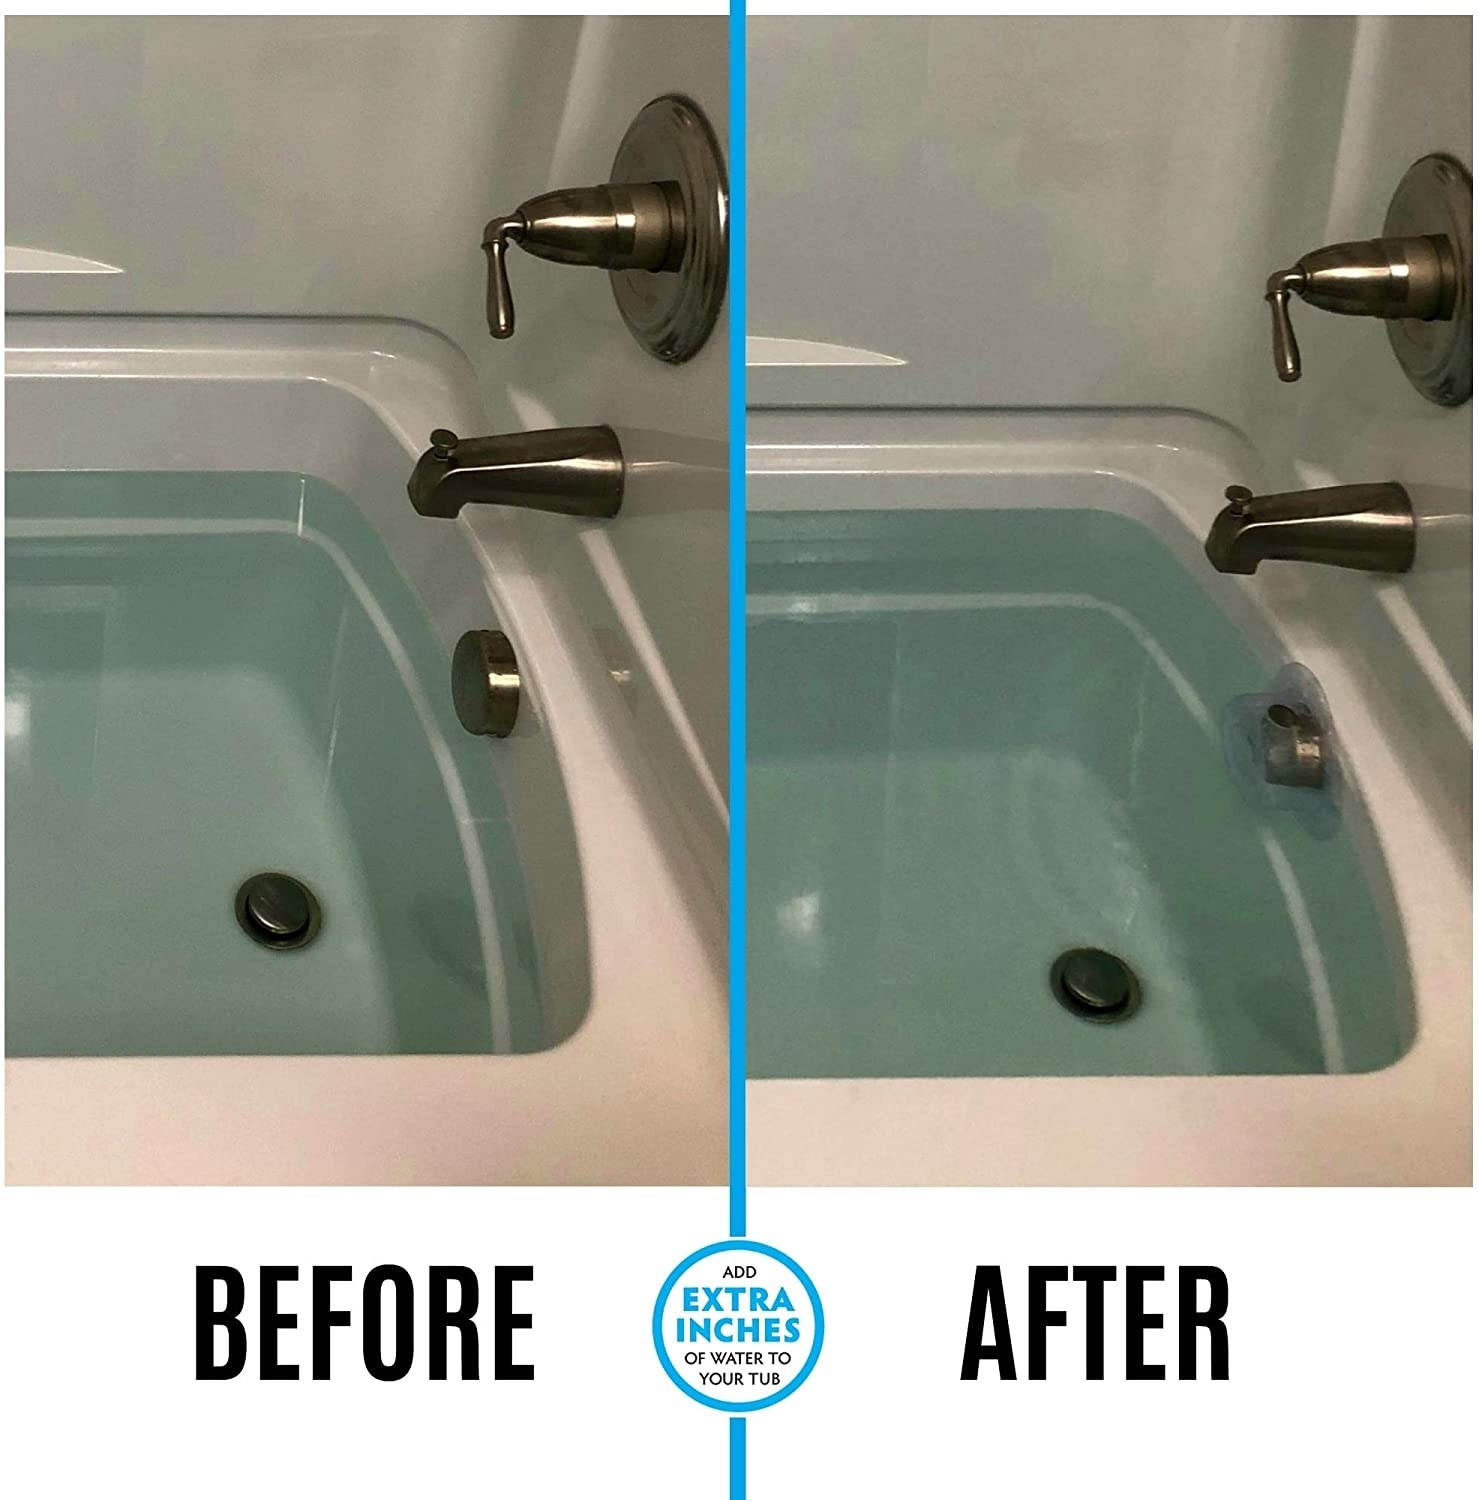 A tub with water several inches below the surface and an after picture with a drain cover and the water closer to the top of the tub